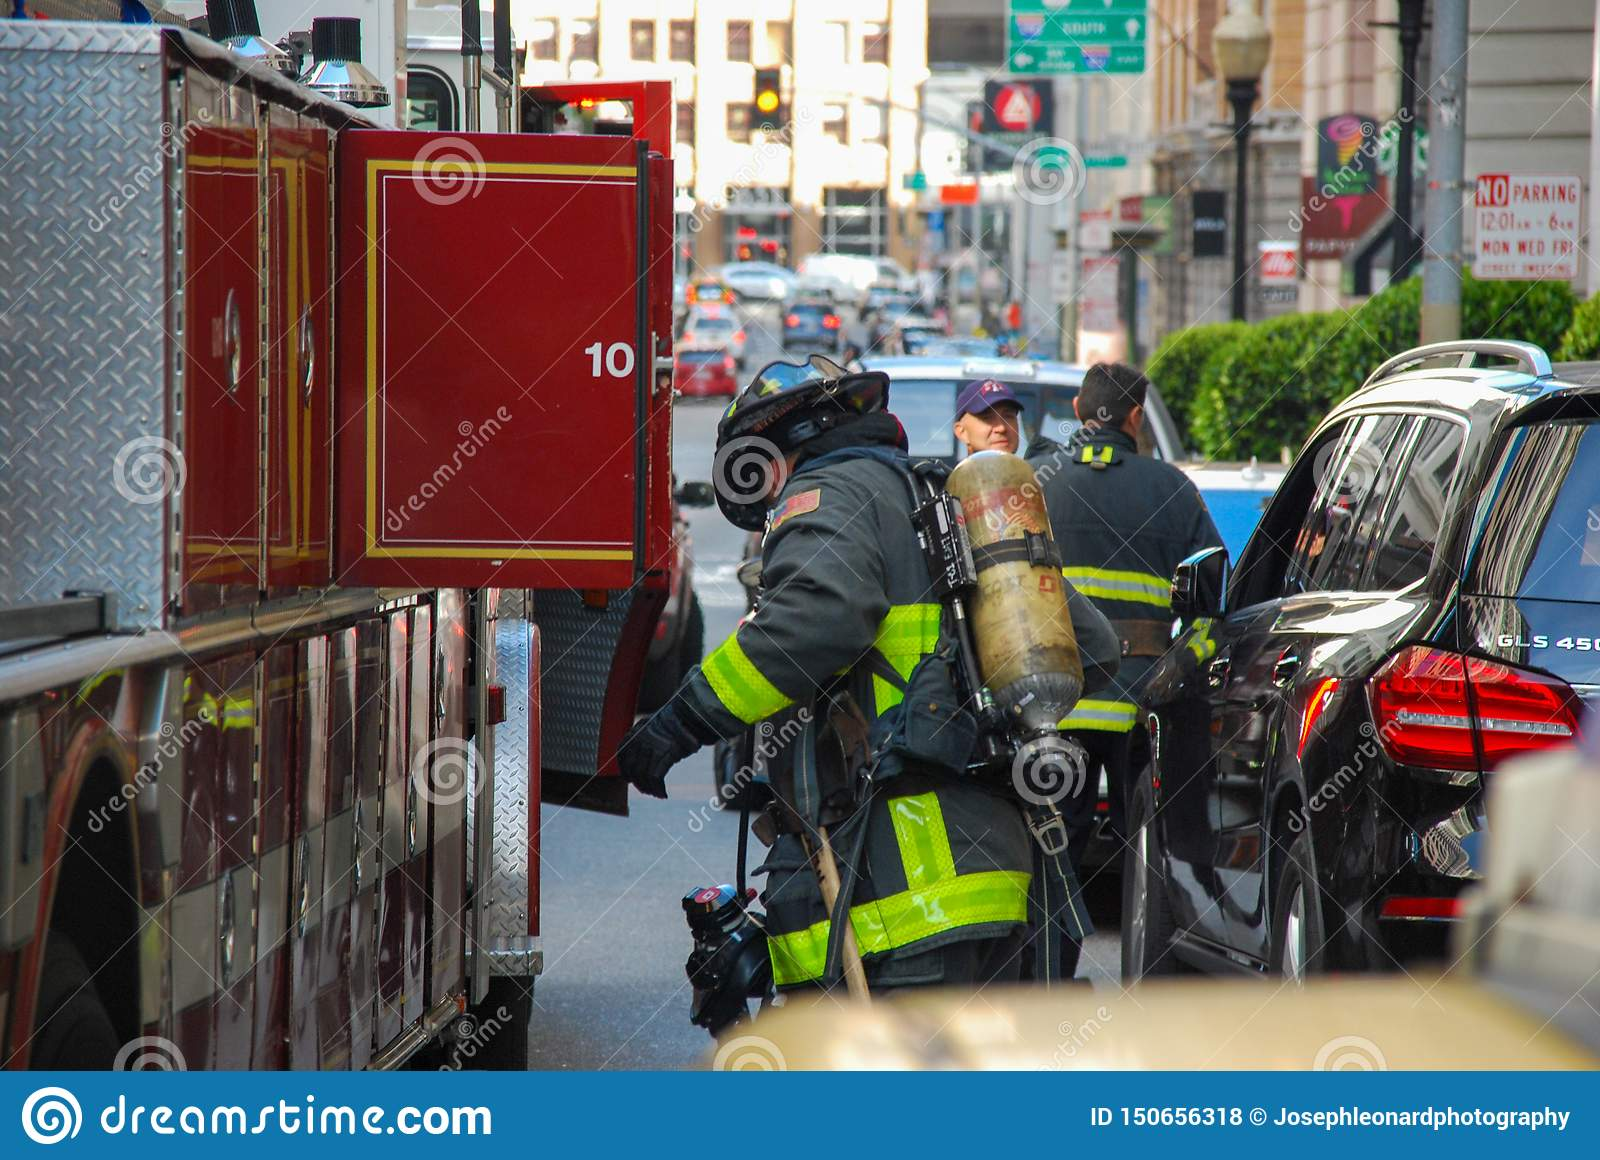 San Francisco Fire Engine and Firemean loading up